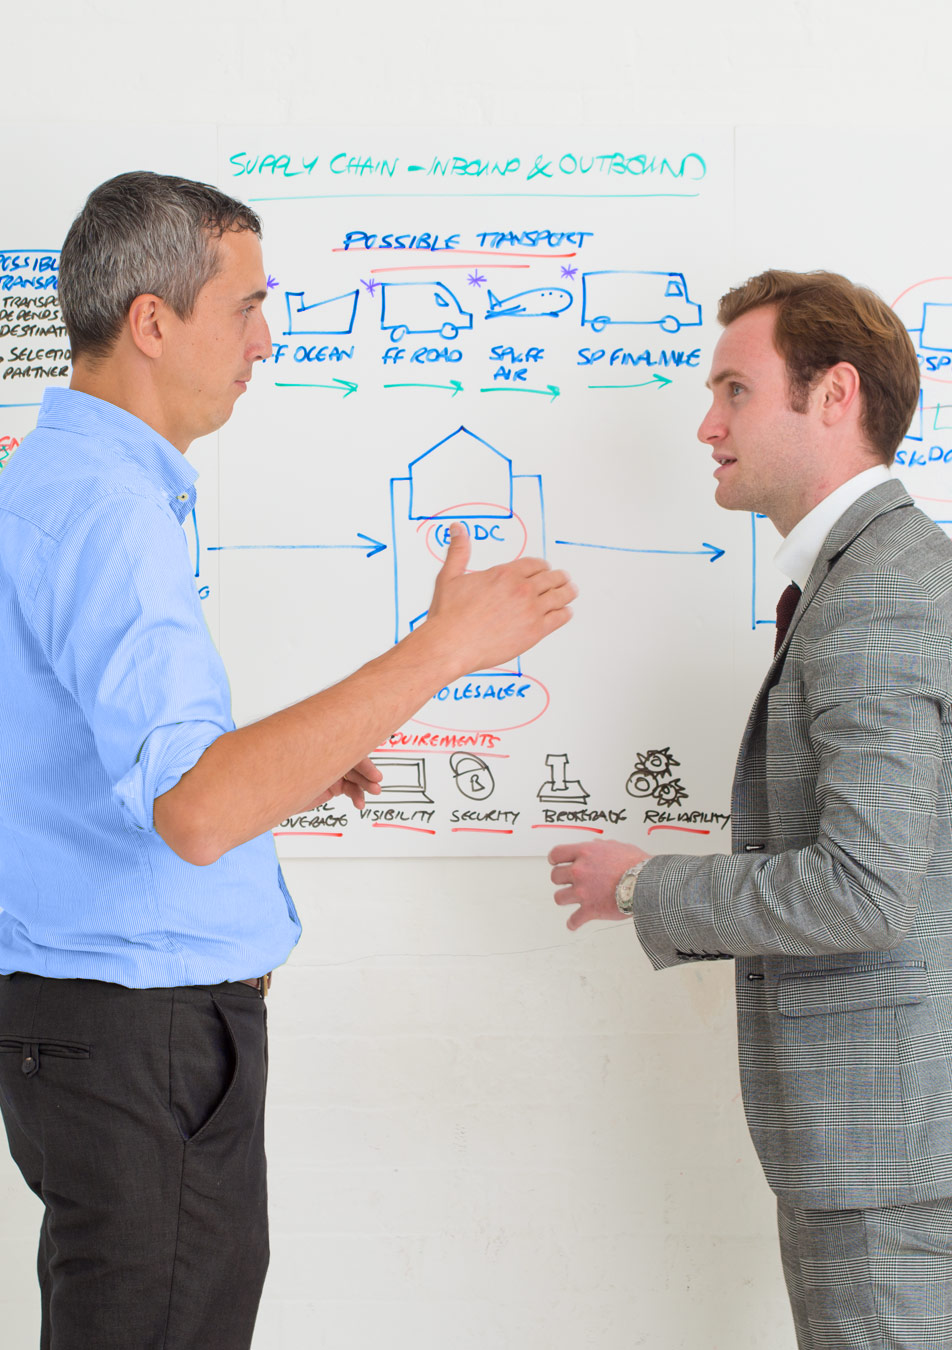 Two co-workers discussing healthcare logistics in front of a white board